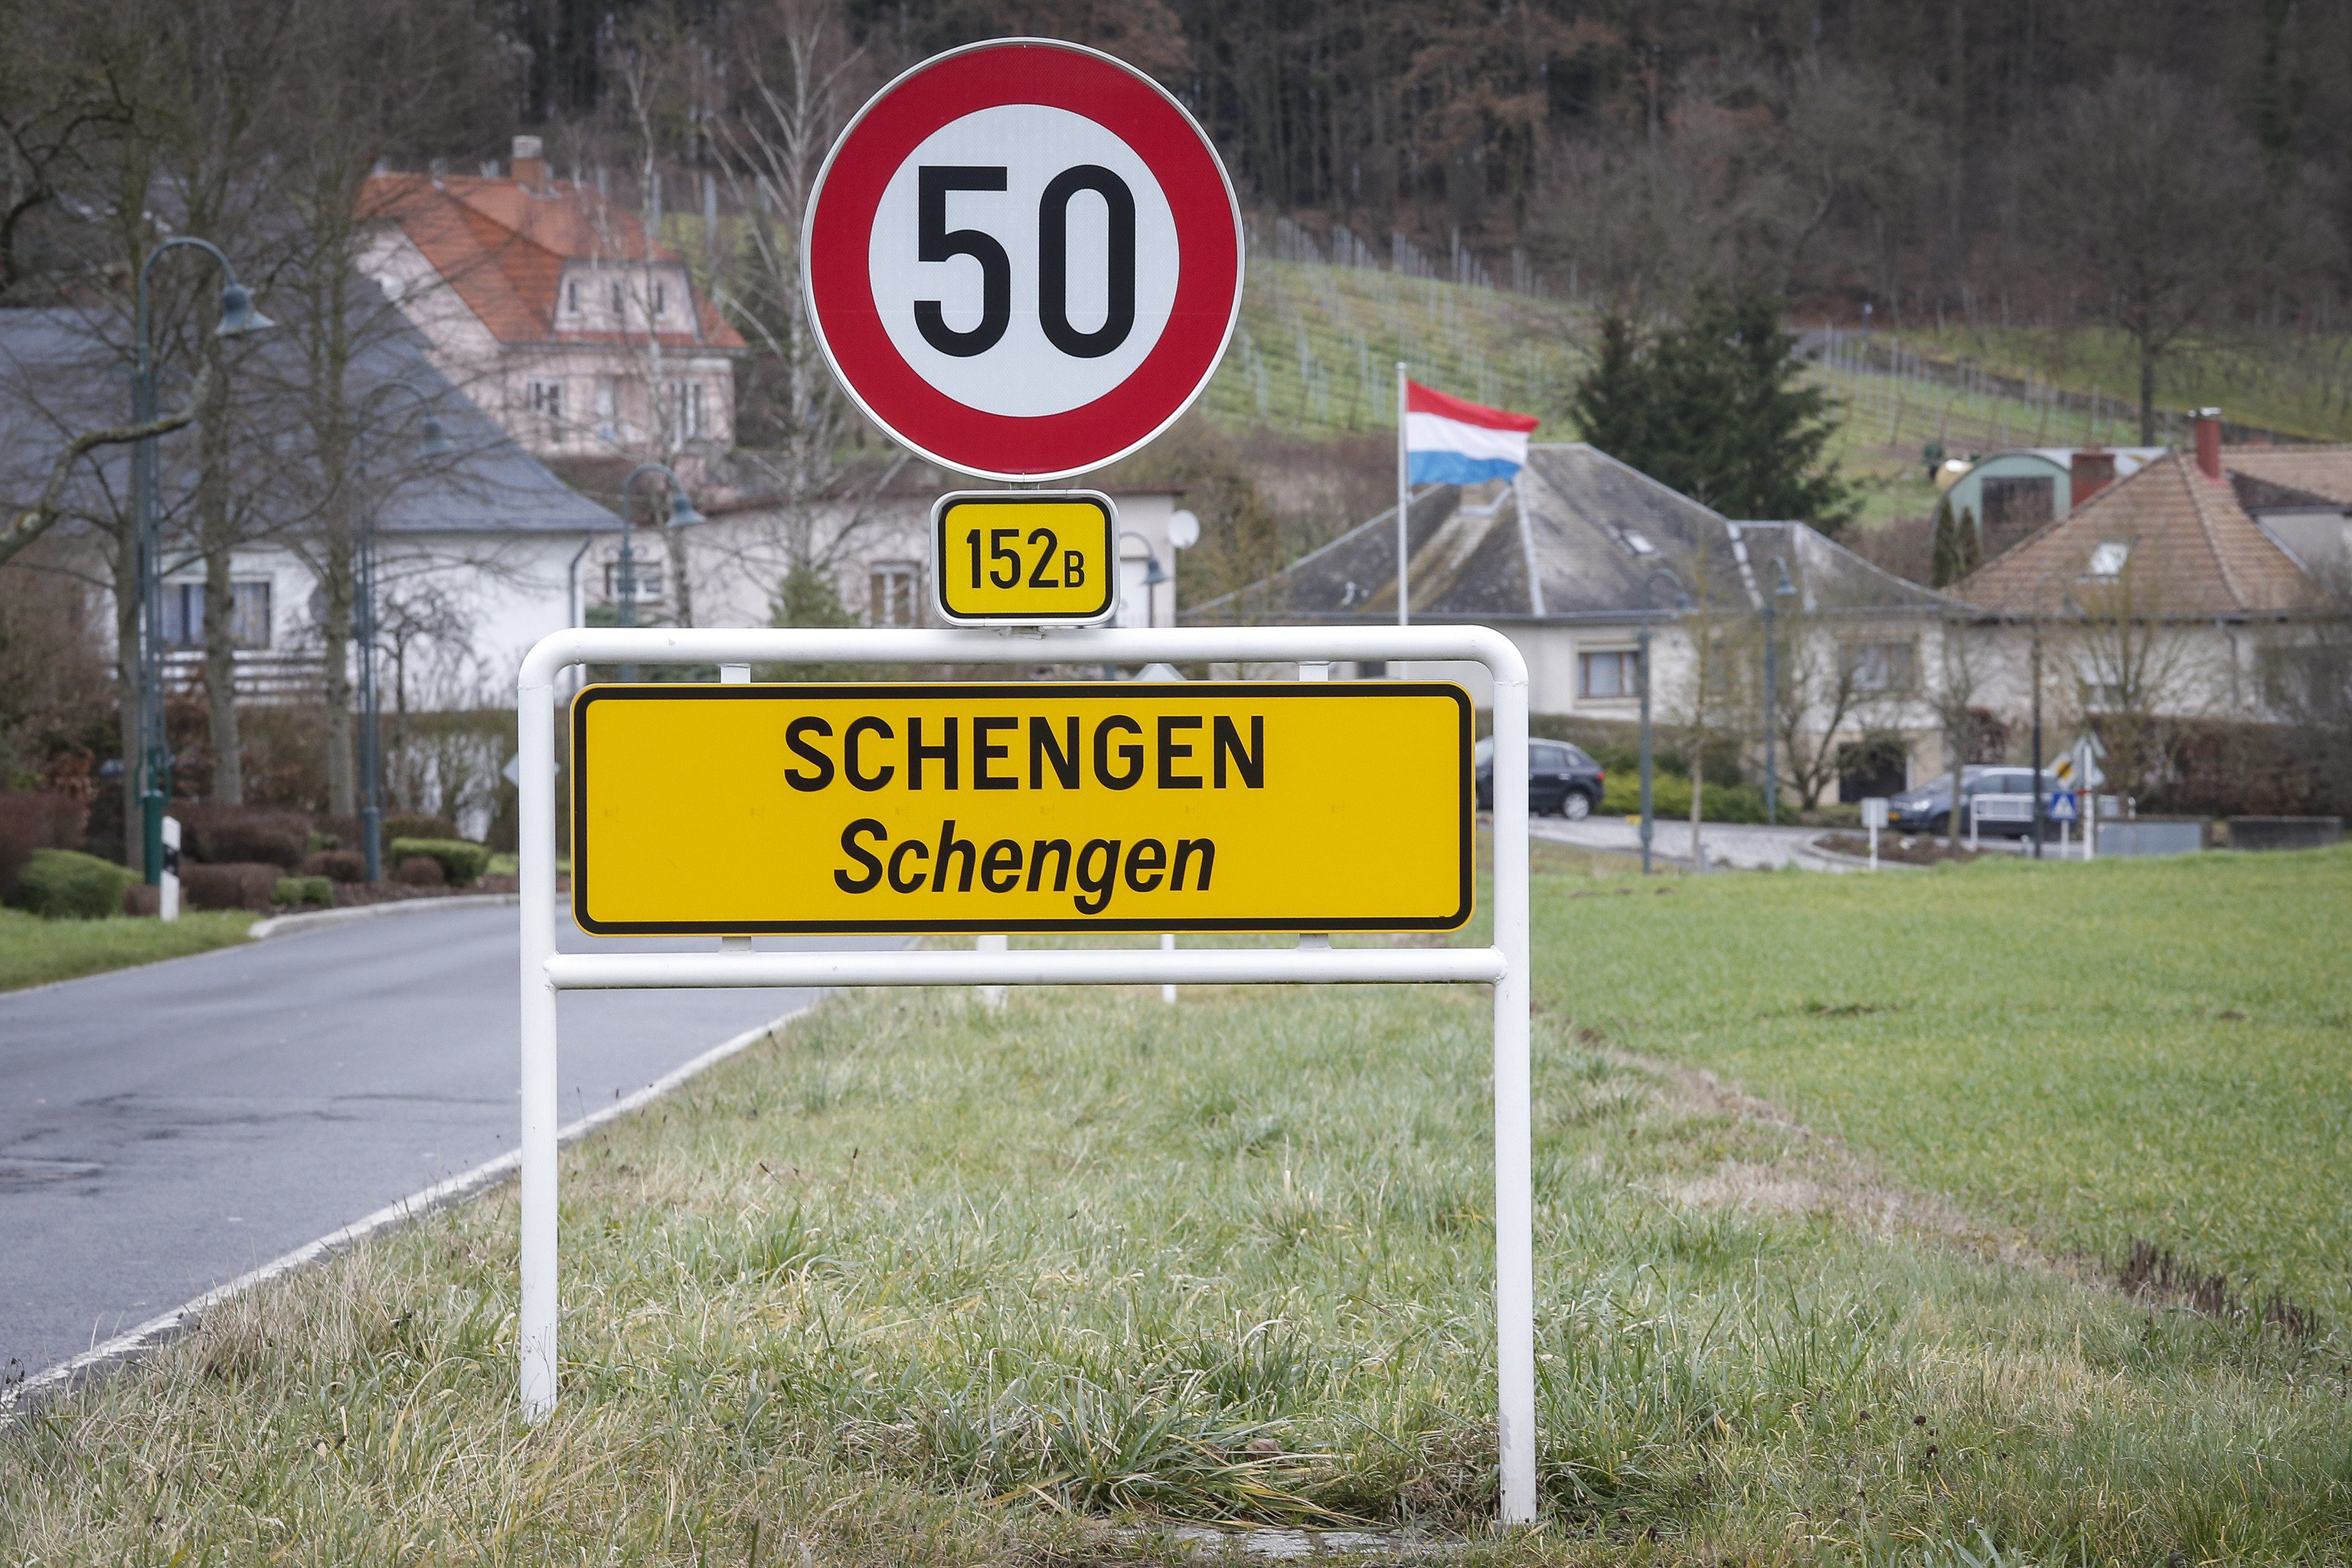 Photo © EPA / Julien Warnand | A view of a Schengen sign in the village of Schengen, Luxembourg. The town symbolizes the free movement of people and goods in 25 European countries under the Schengen Agreement signed in 1985 and 1990.